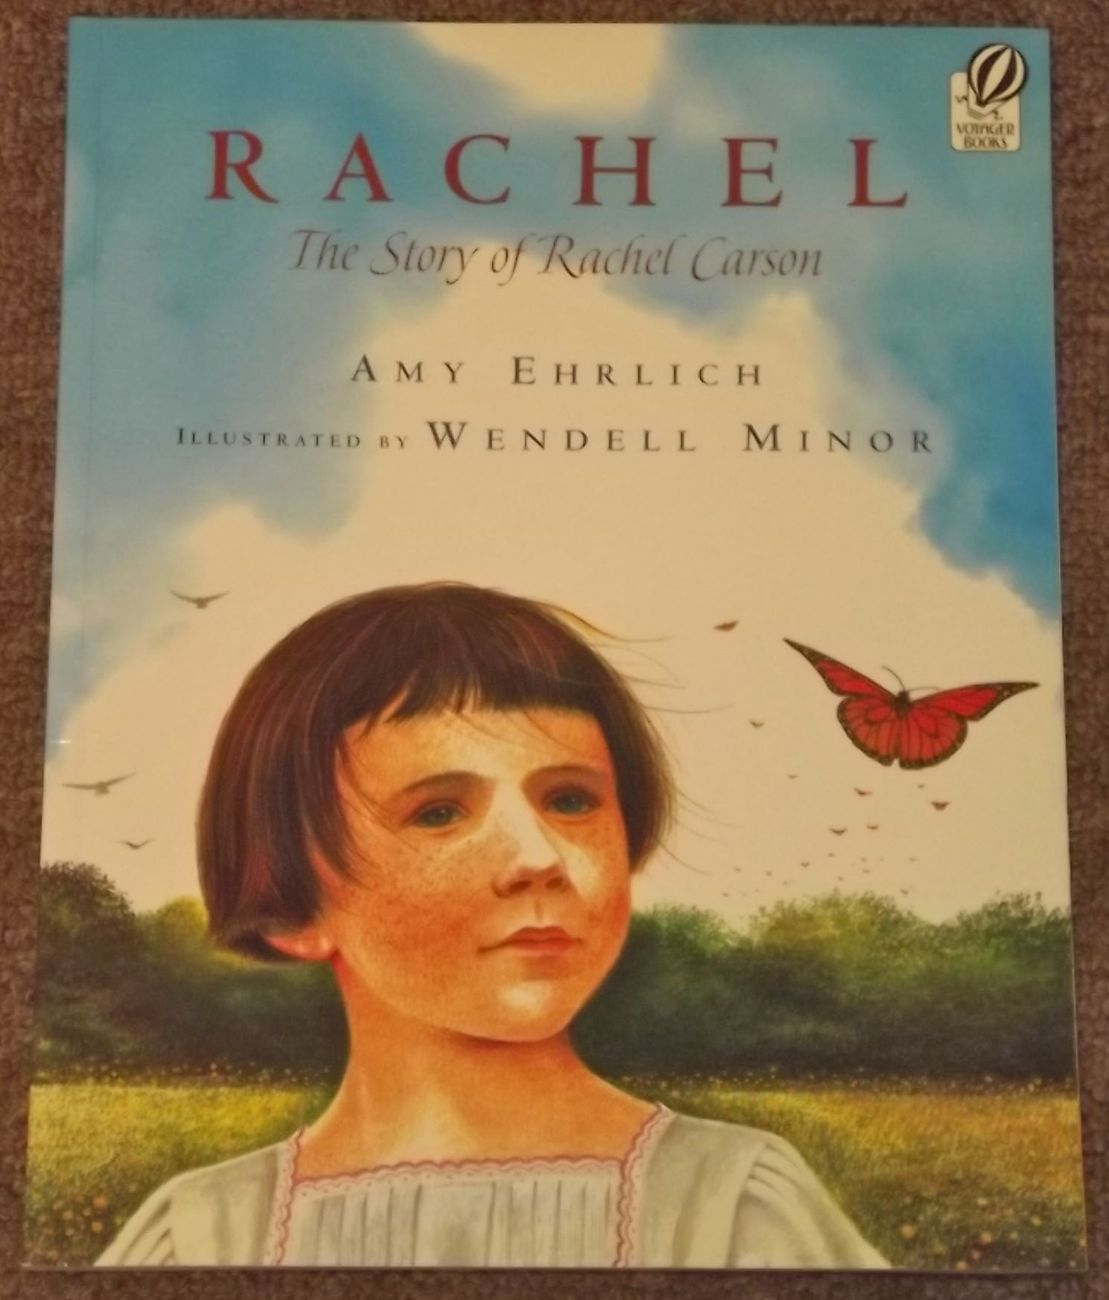 Rachel The Story of Rachel Carson by Amy Ehrlich and Wendell Minor